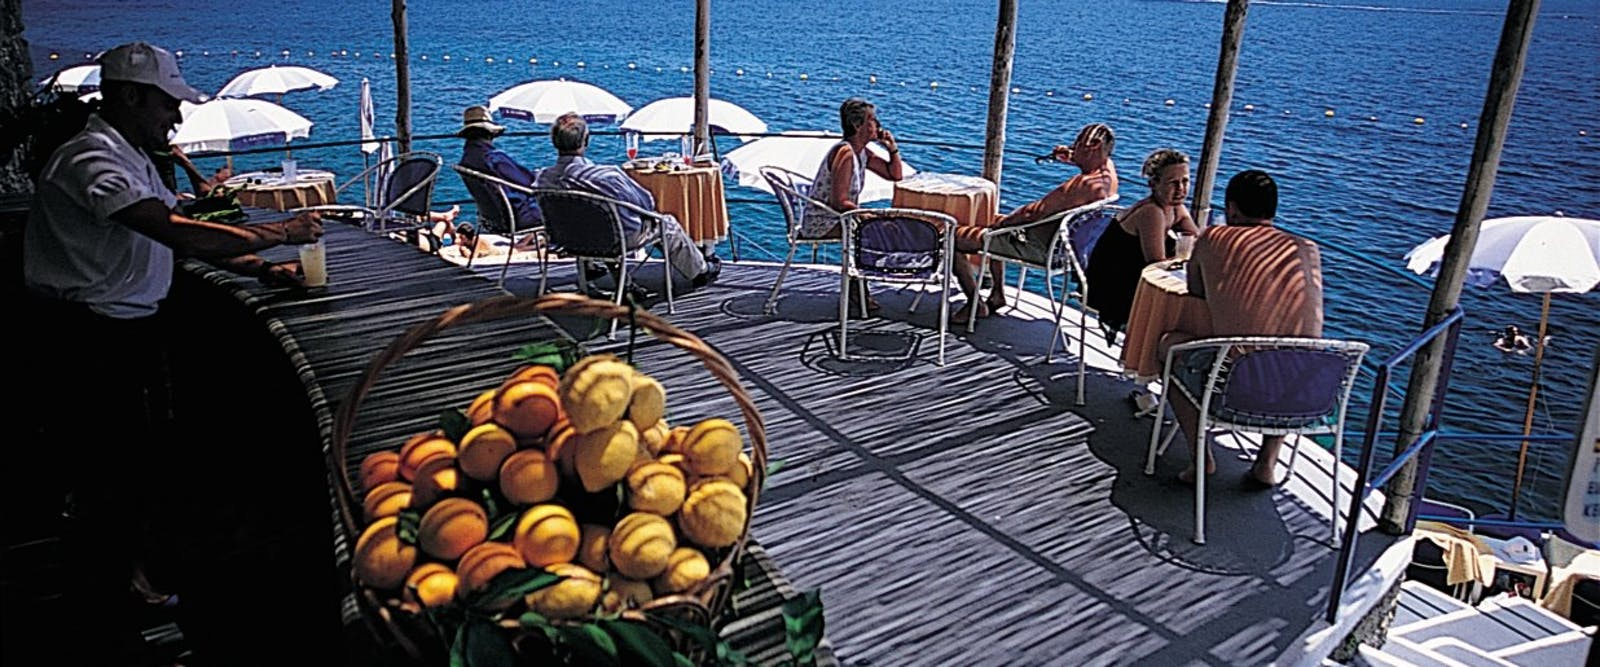 Beach Bar at Hotel Santa Caterina, Amalfi Coast, Italy